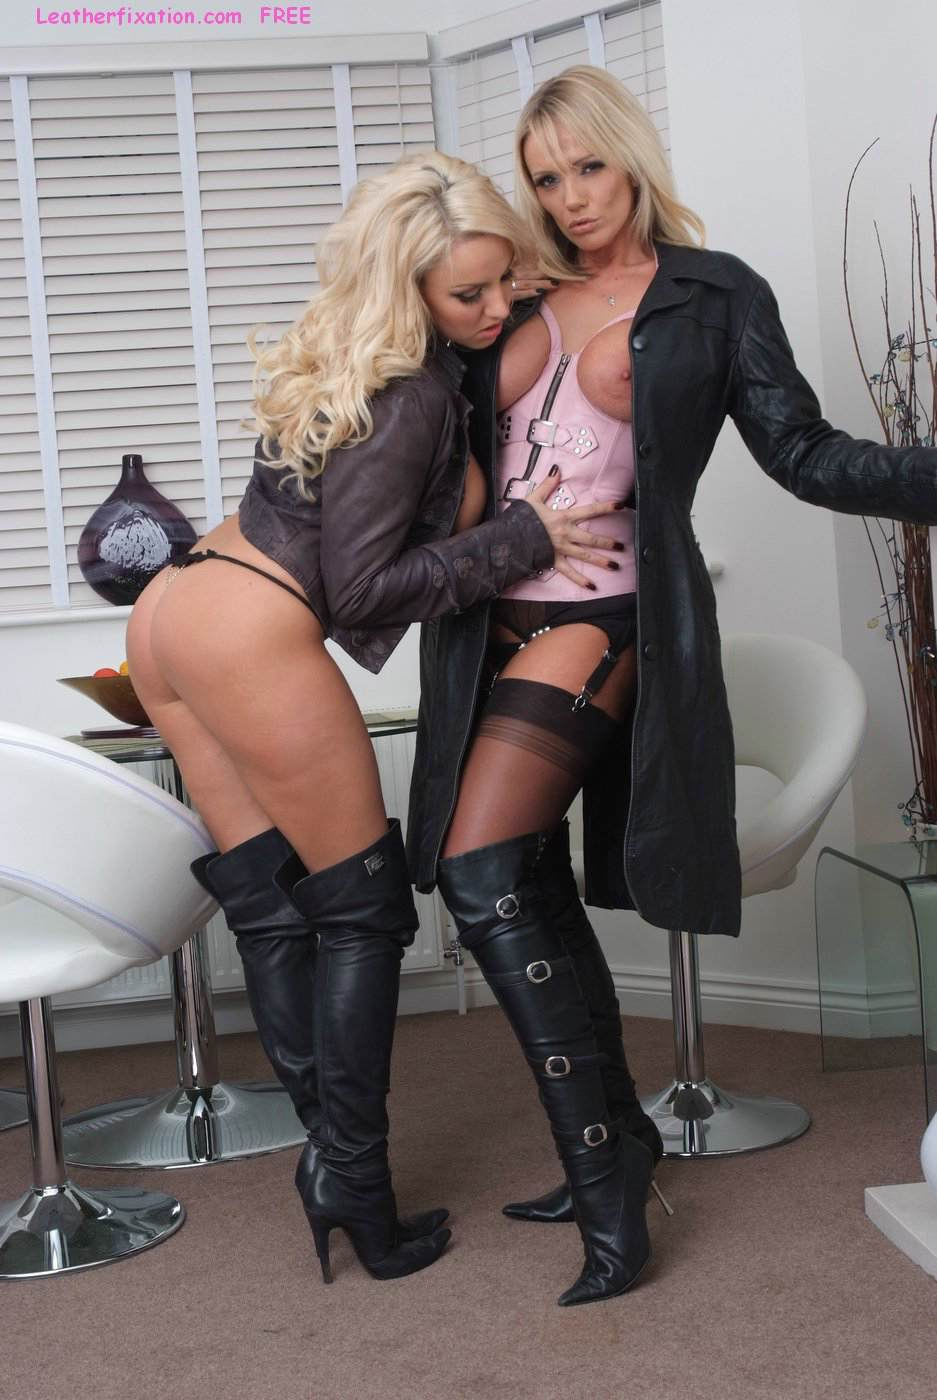 Dannii Harwood Lucy Zara Complete picture 5 of dannii harwood and lucy zara in a couple of hot